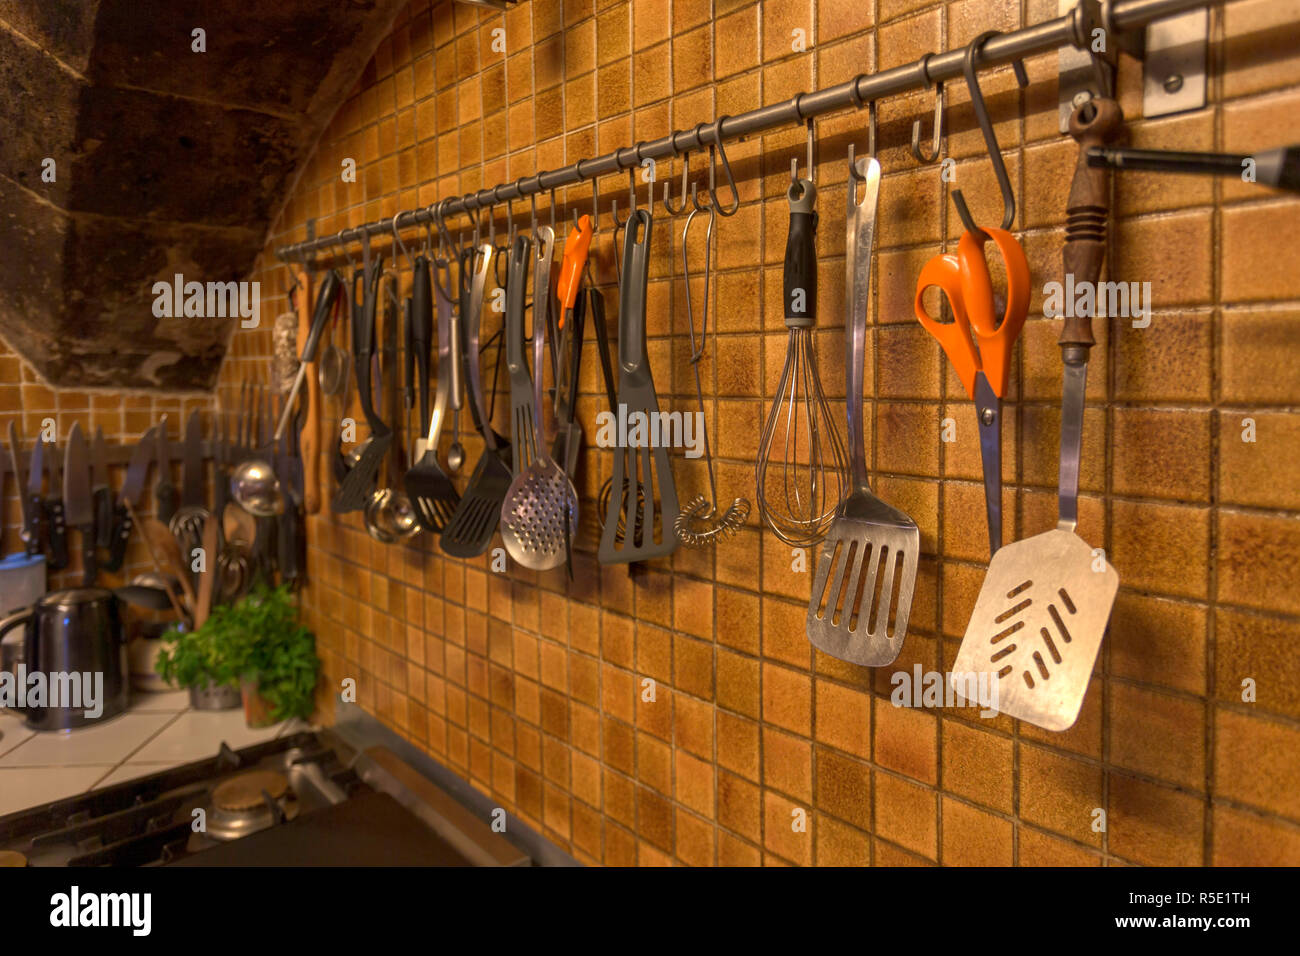 Kitchen utensils hanging on the wall of a vintage kitchen. Stock Photo